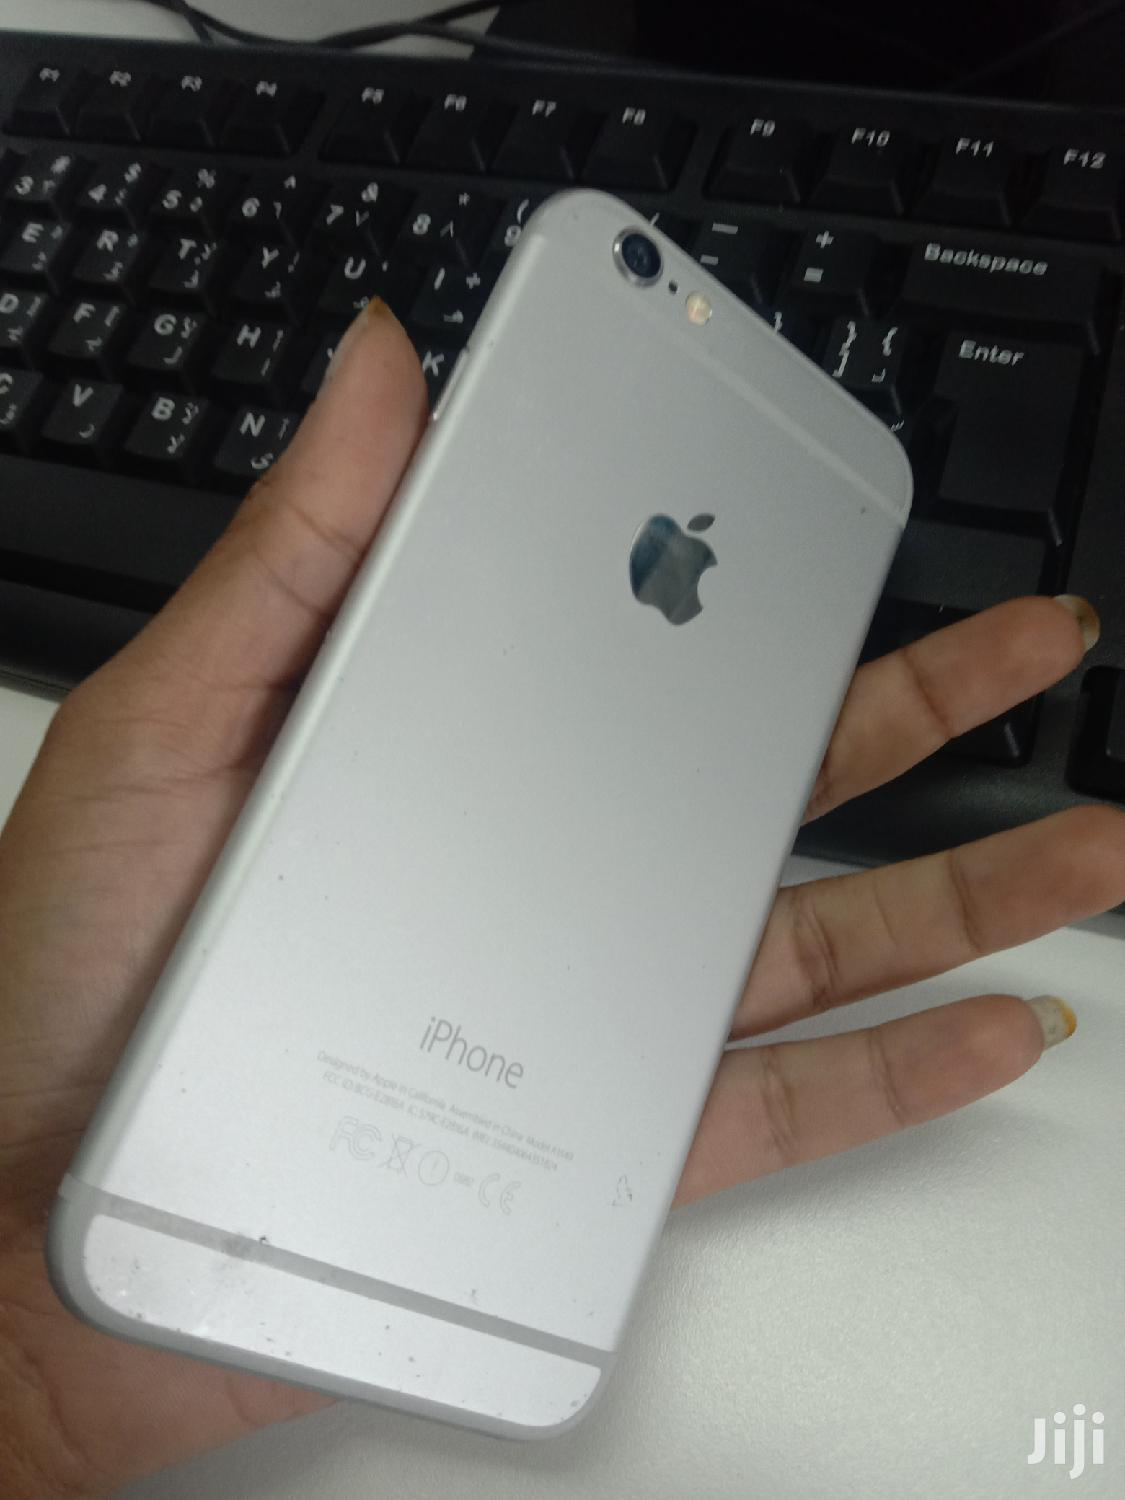 Archive: iPhone 6plain 64gb Battery 100% Support Wi-Fi Only